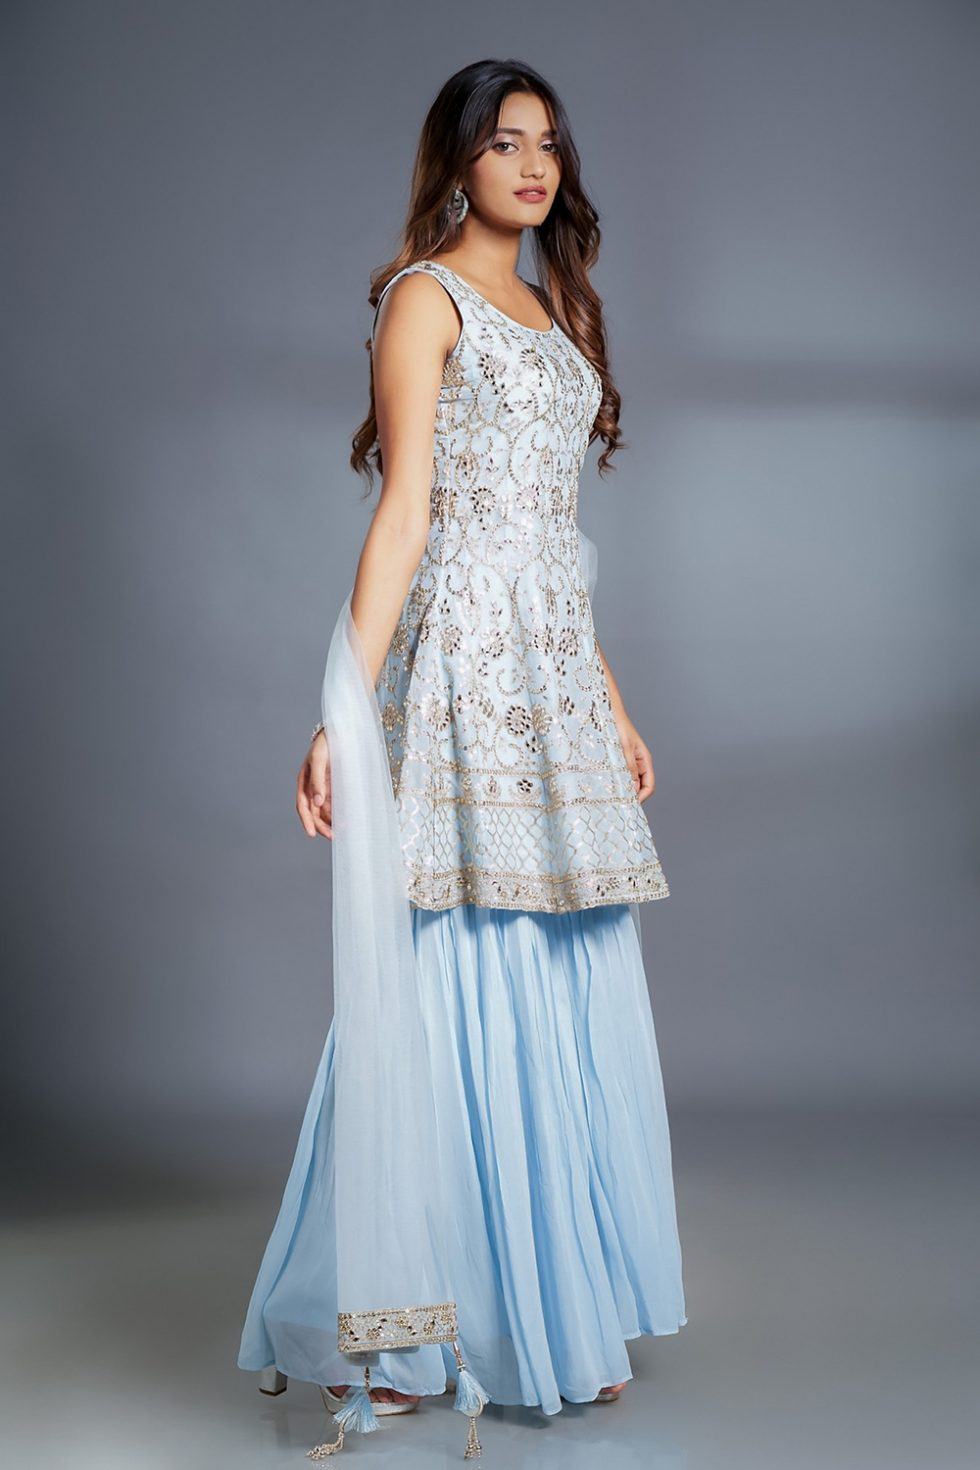 Powder blue palazzo pant set with 'abla' embroidered kurta top and matching dupatta with gold details.